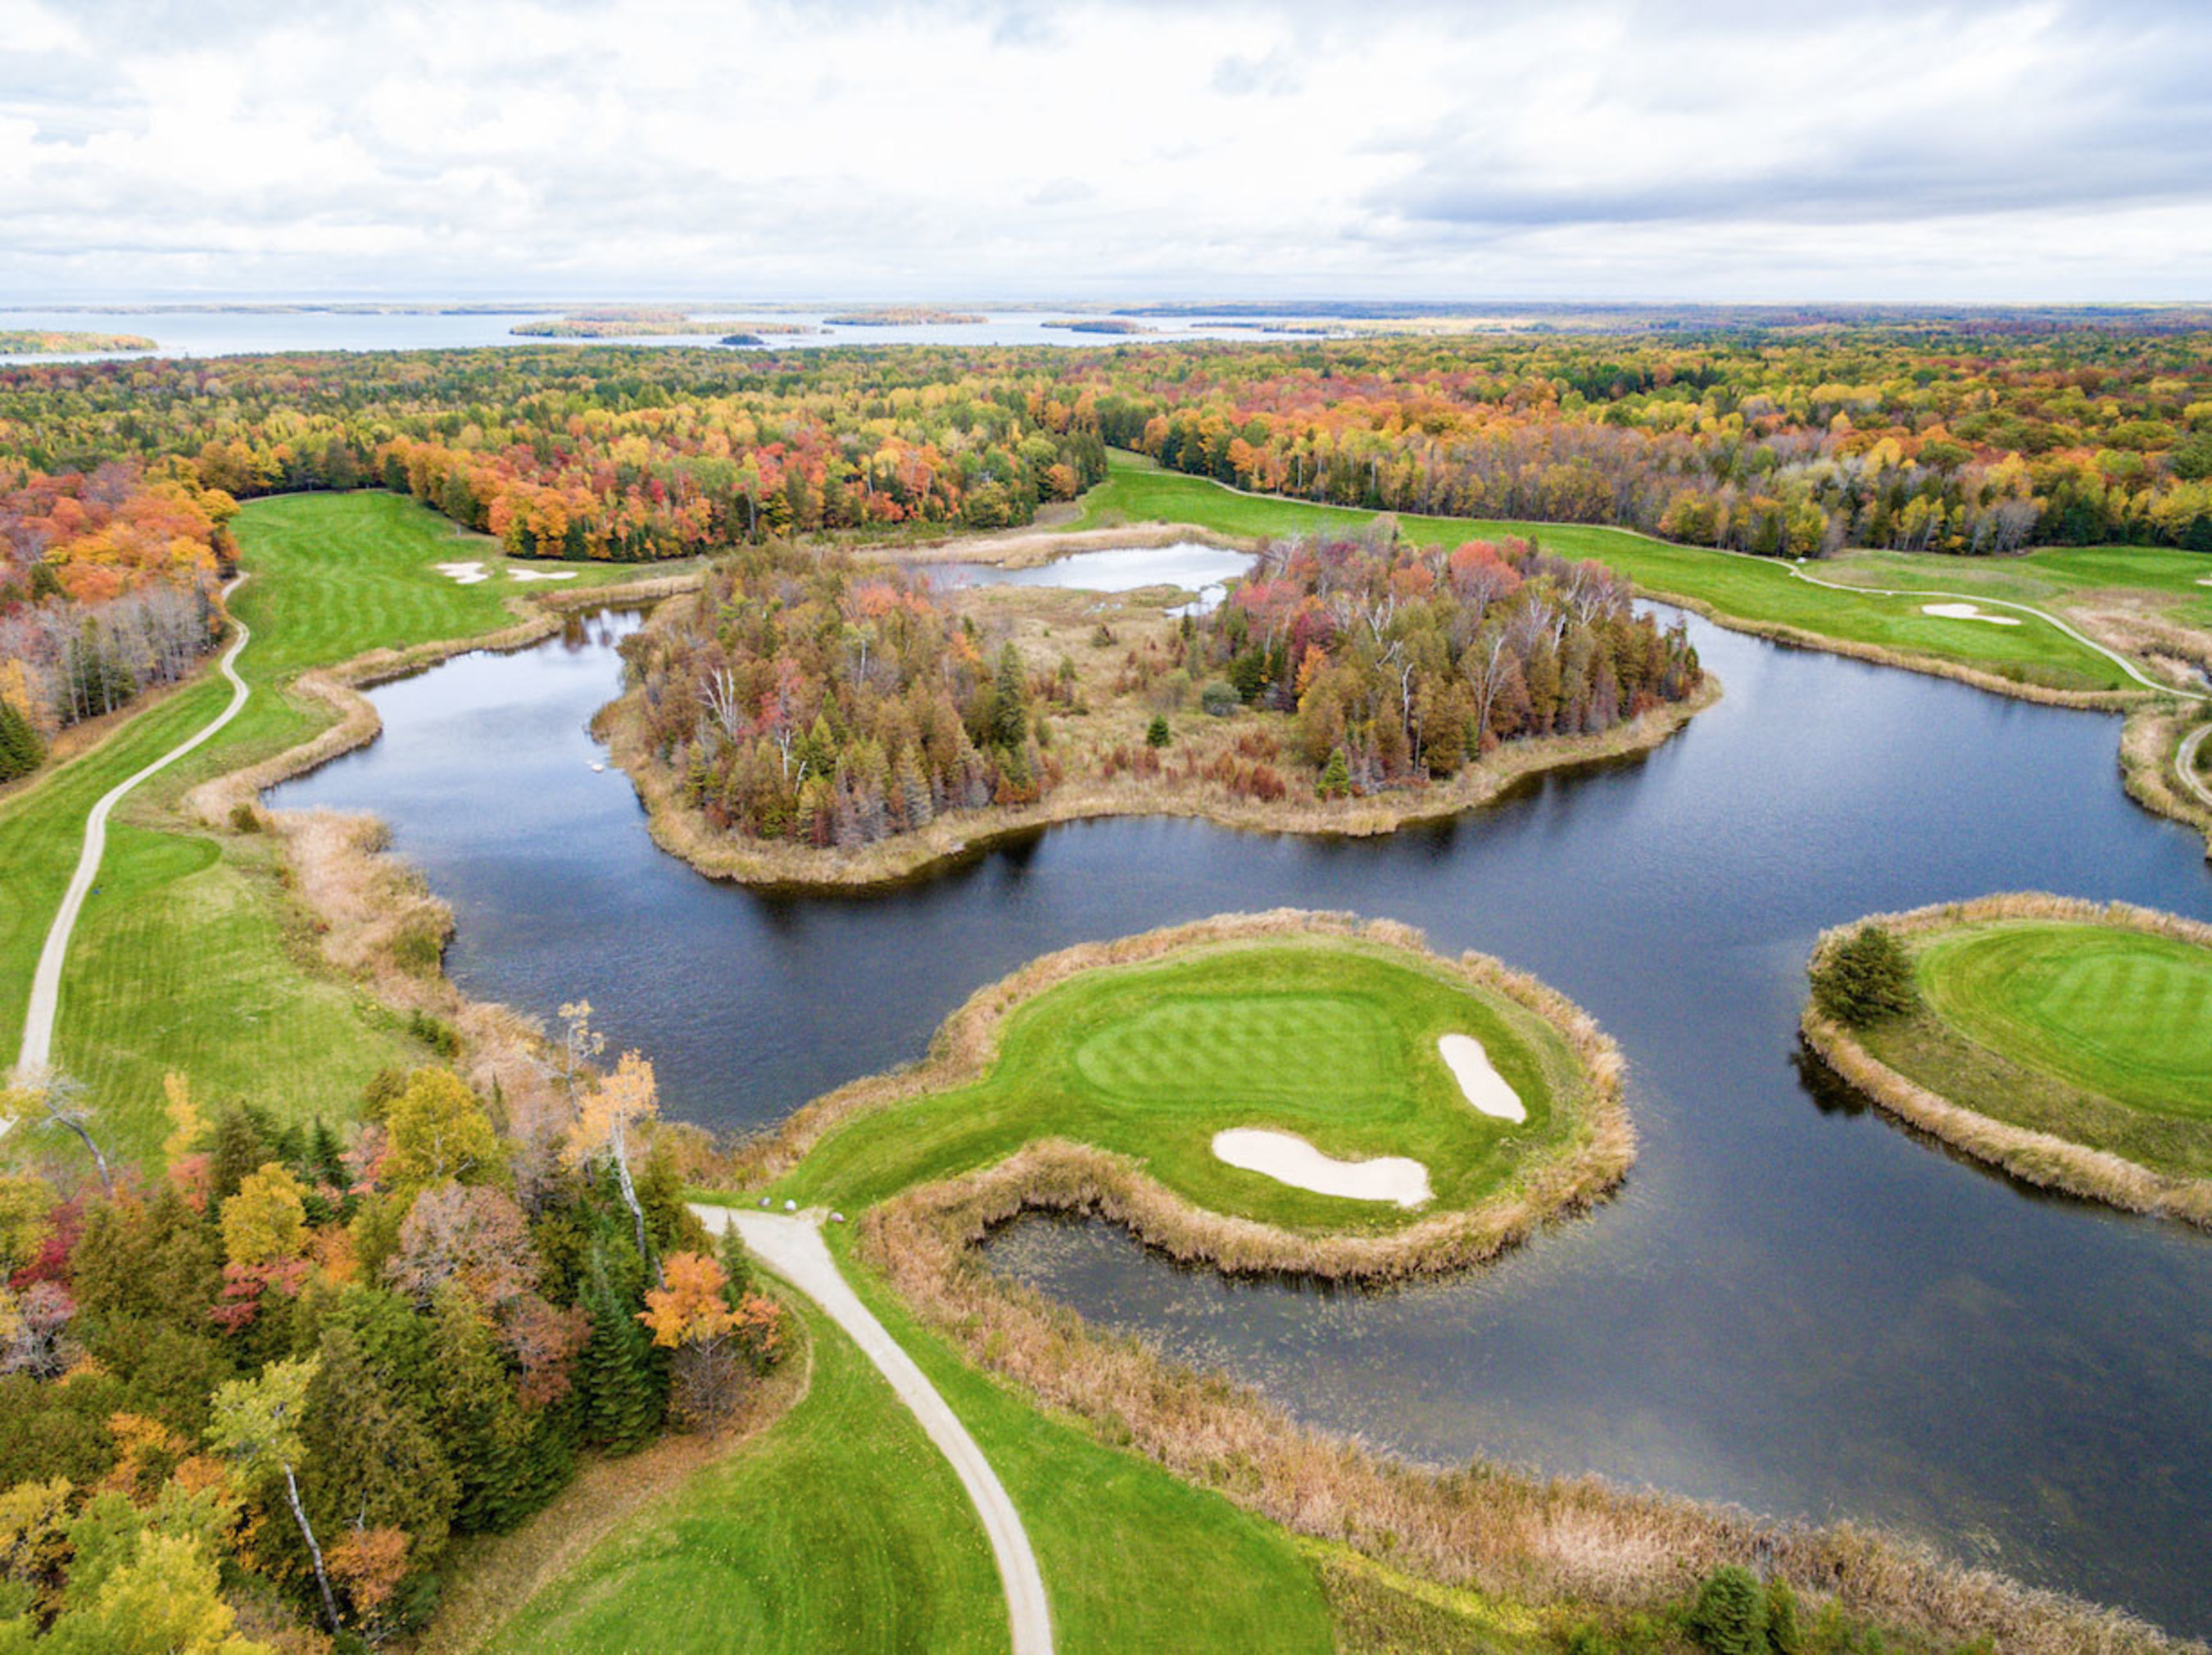 Concierge Auctions Announces Its Second Michigan Opportunity This Year: Two Upper Peninsula Properties Along The Great Lakes